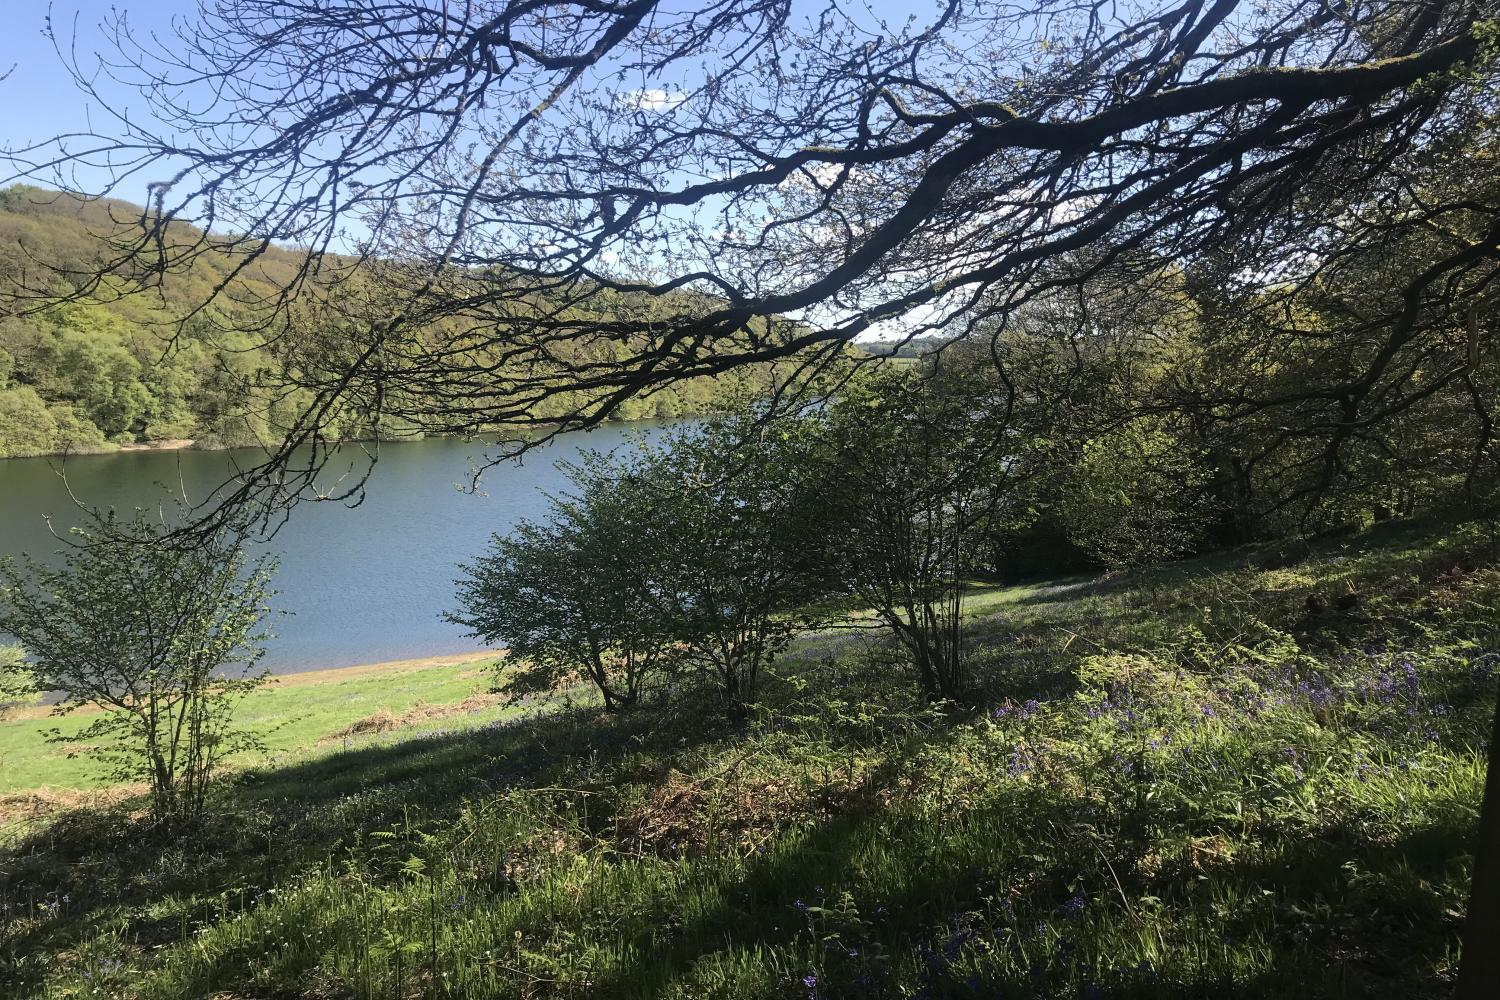 Accommodation near Clatworthy Reservoir for walks and fishing